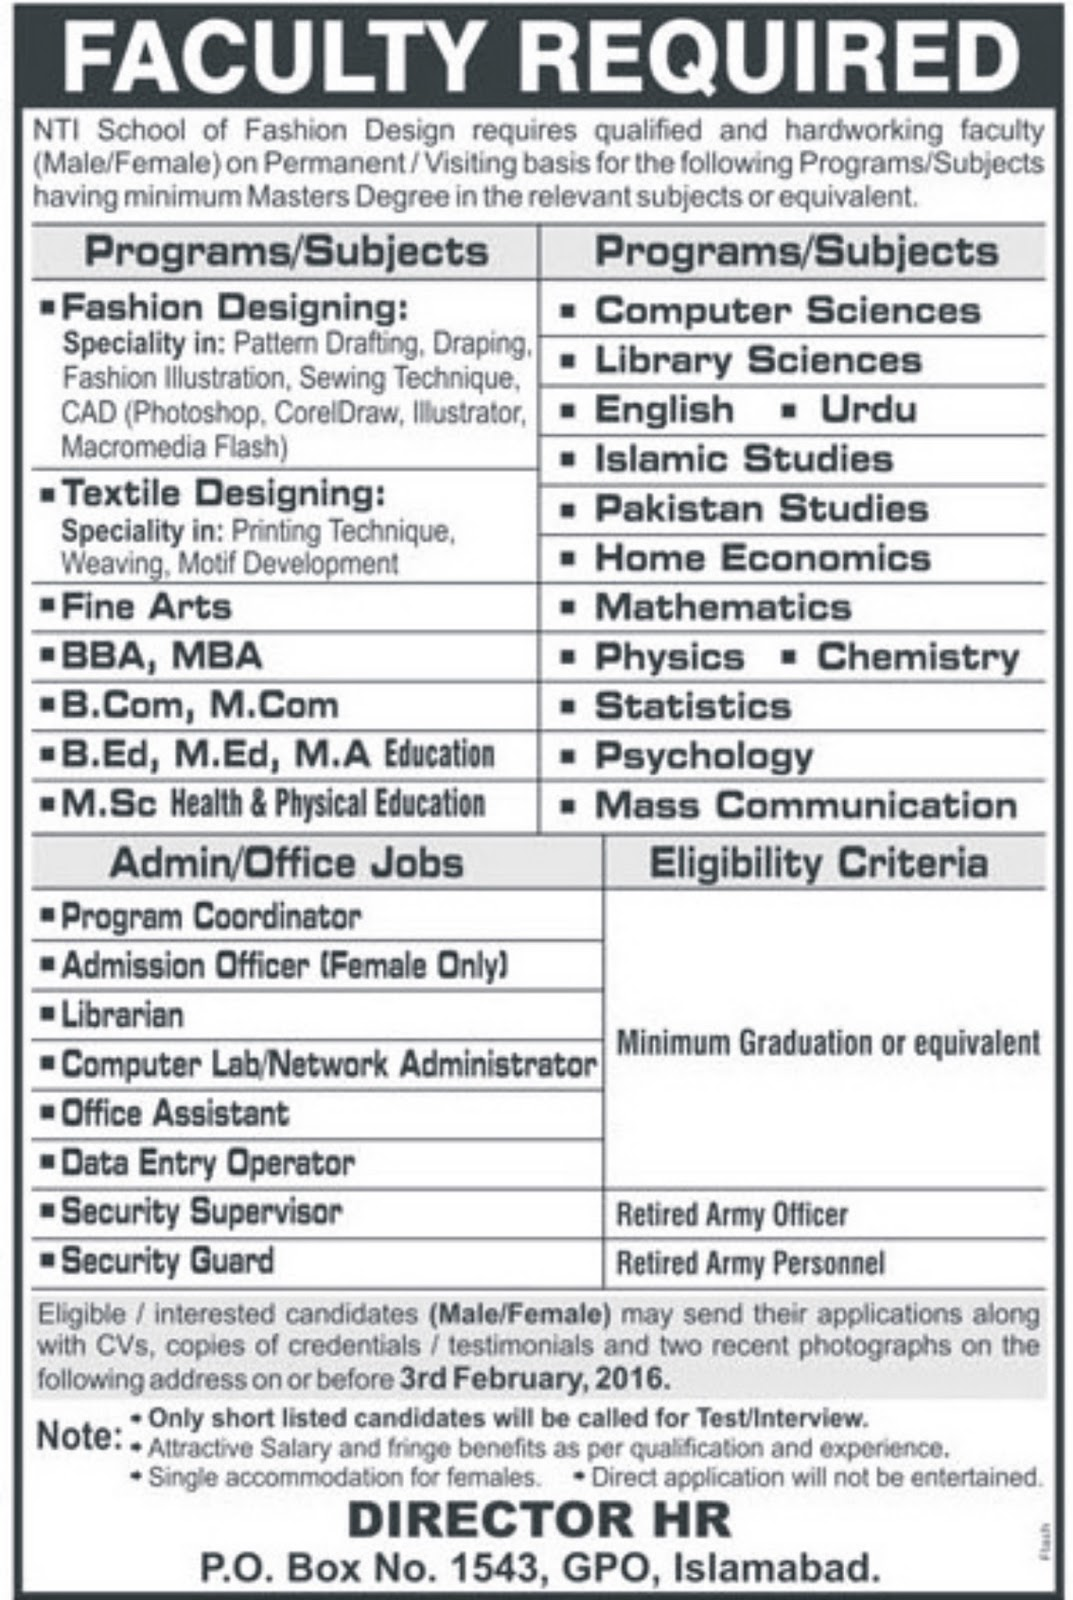 Admin Teaching Jobs At Nti School Islamabad For Science Arts Subjects Government Jobs Private Jobs In Pakistan 2018